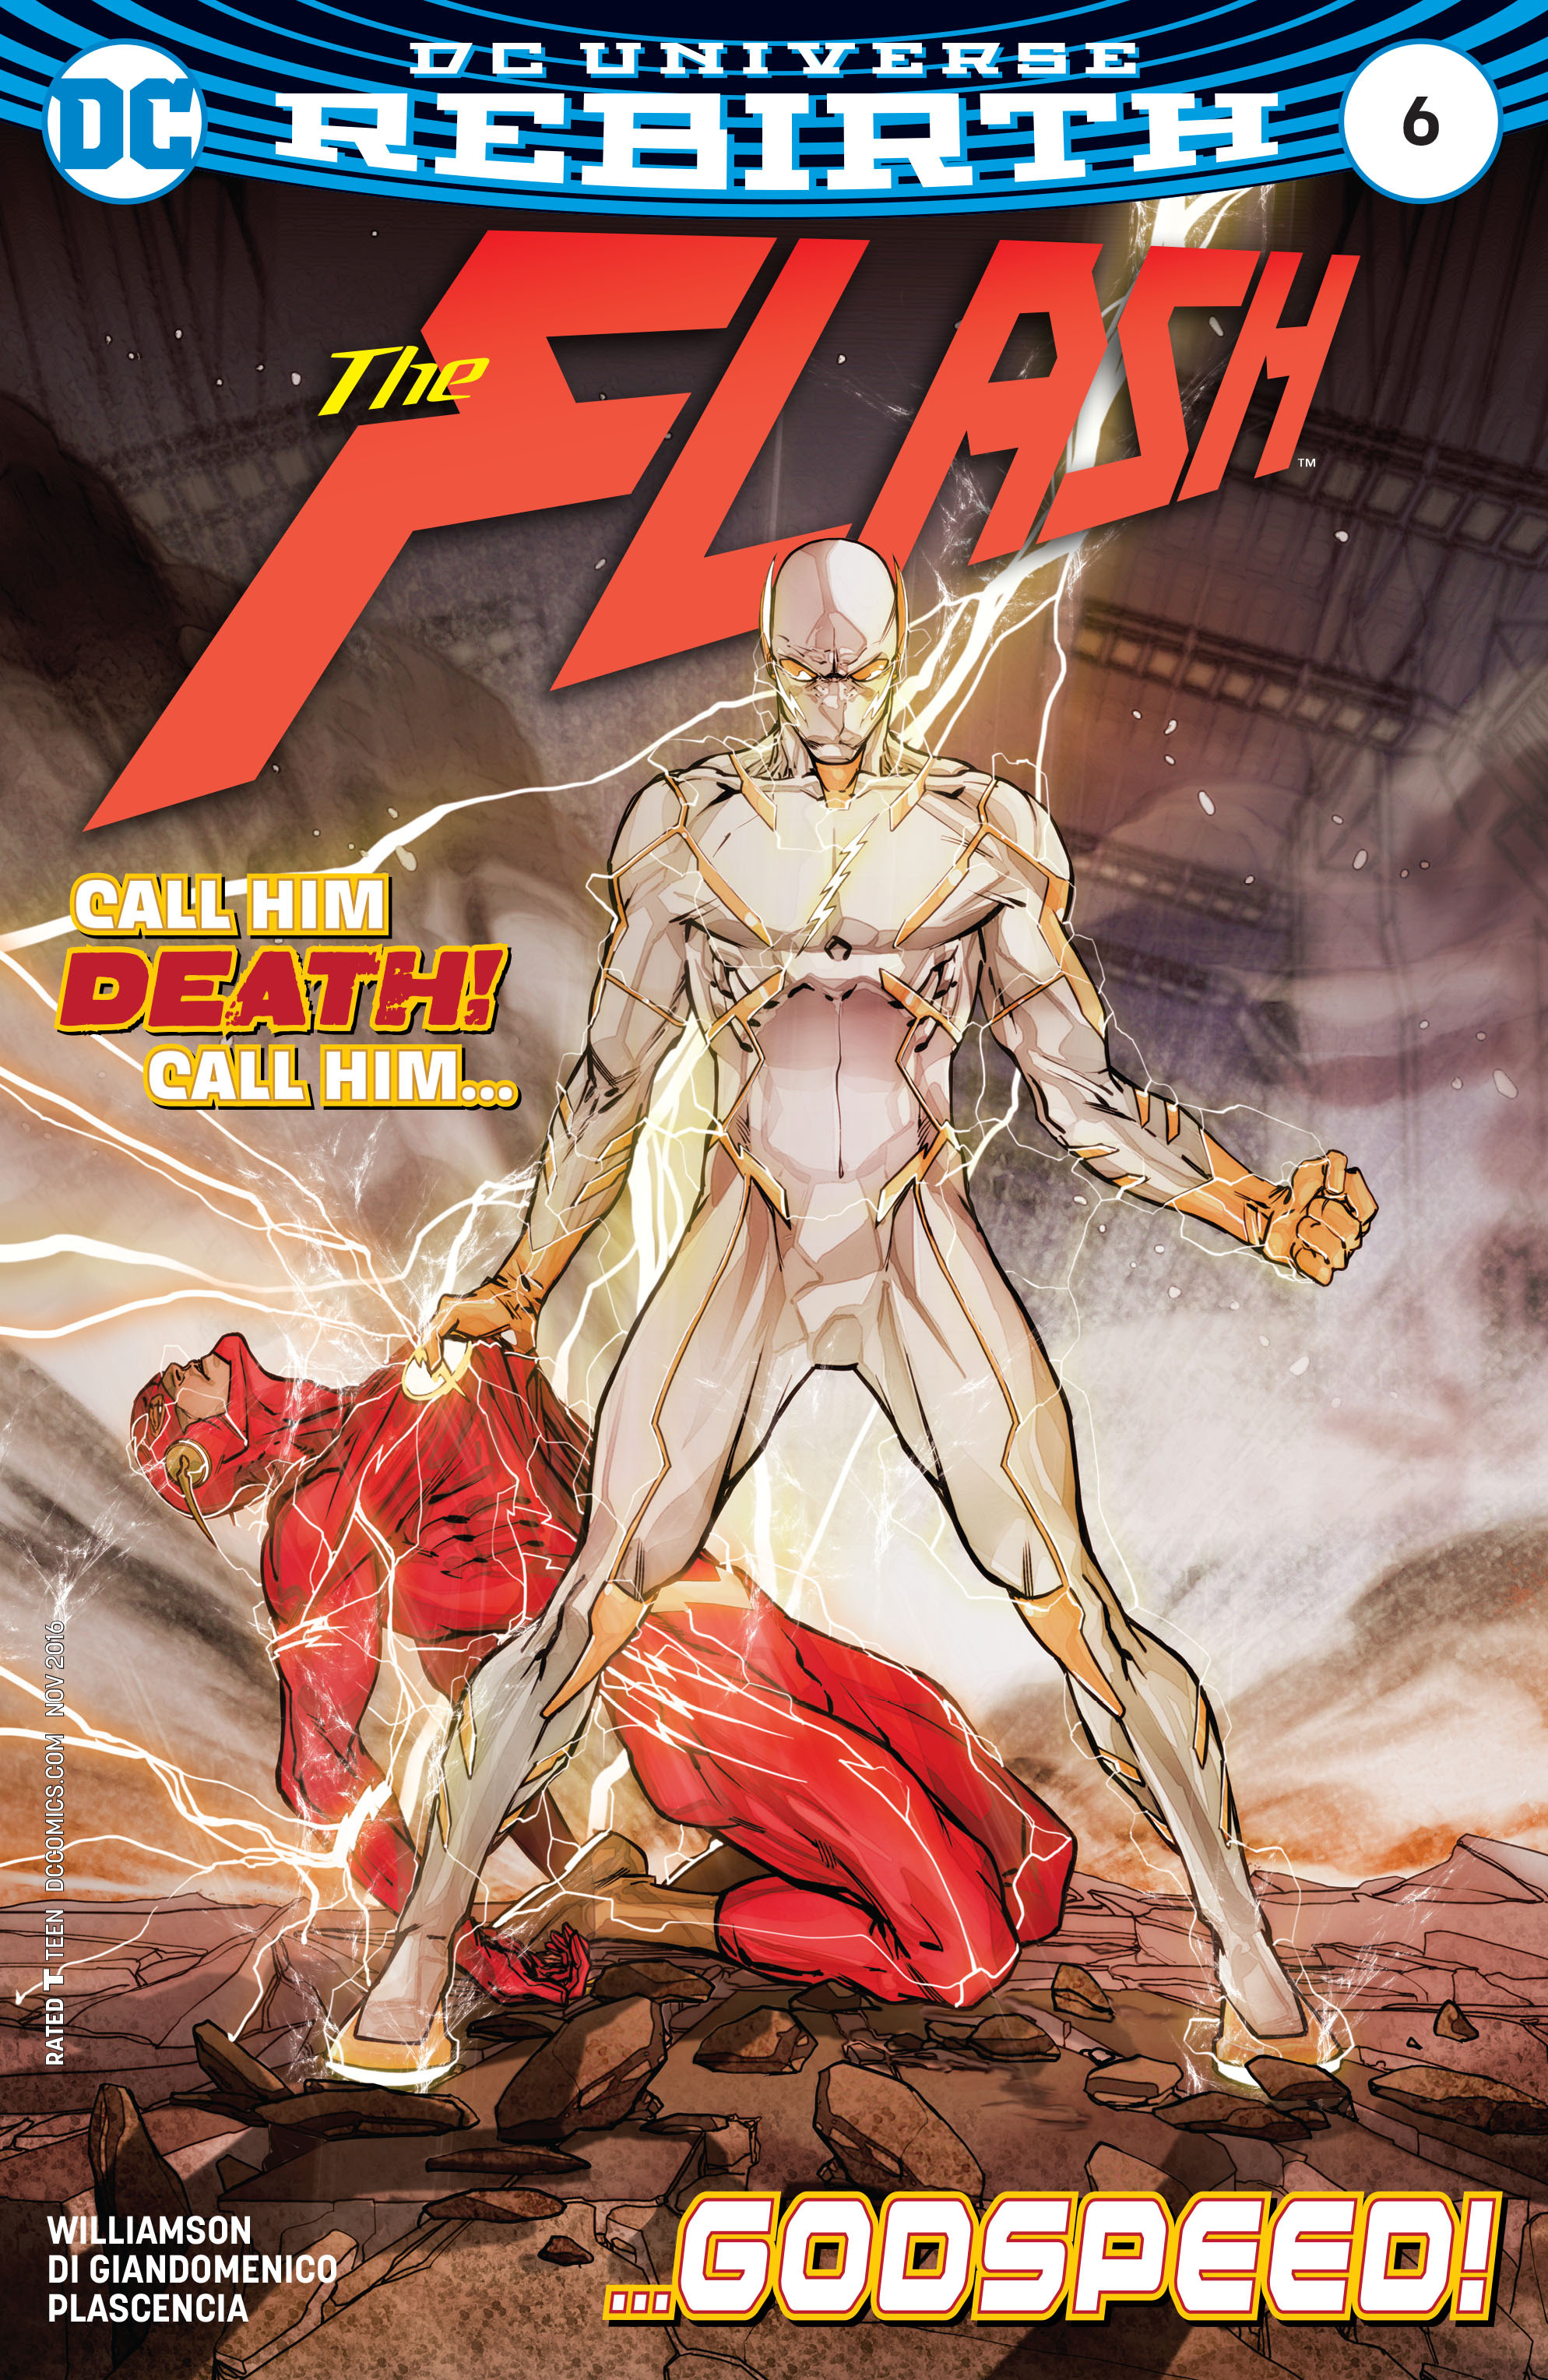 The Flash (2016) issue 6 - Page 1